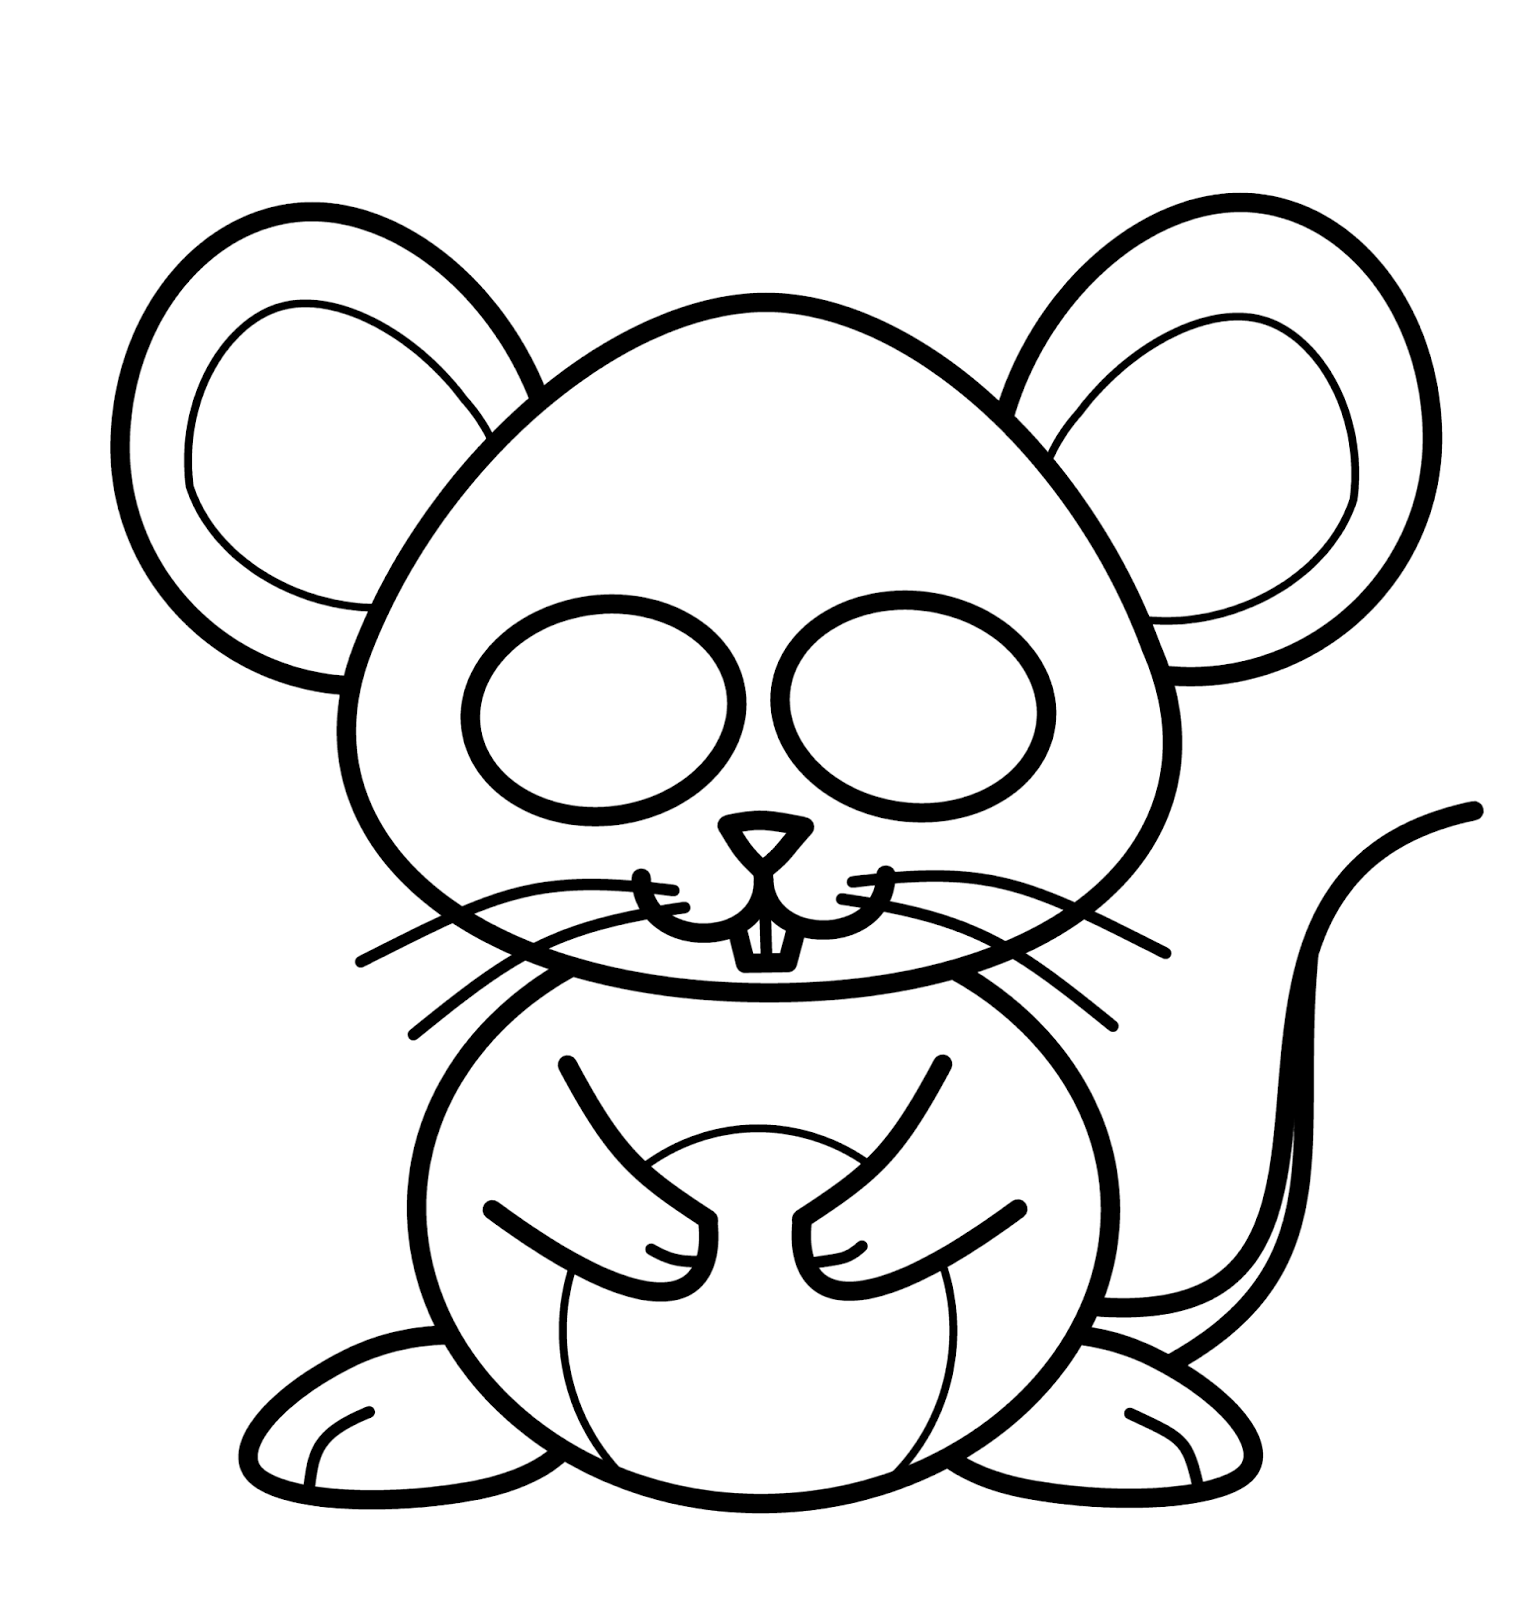 Mouse Images Cartoons